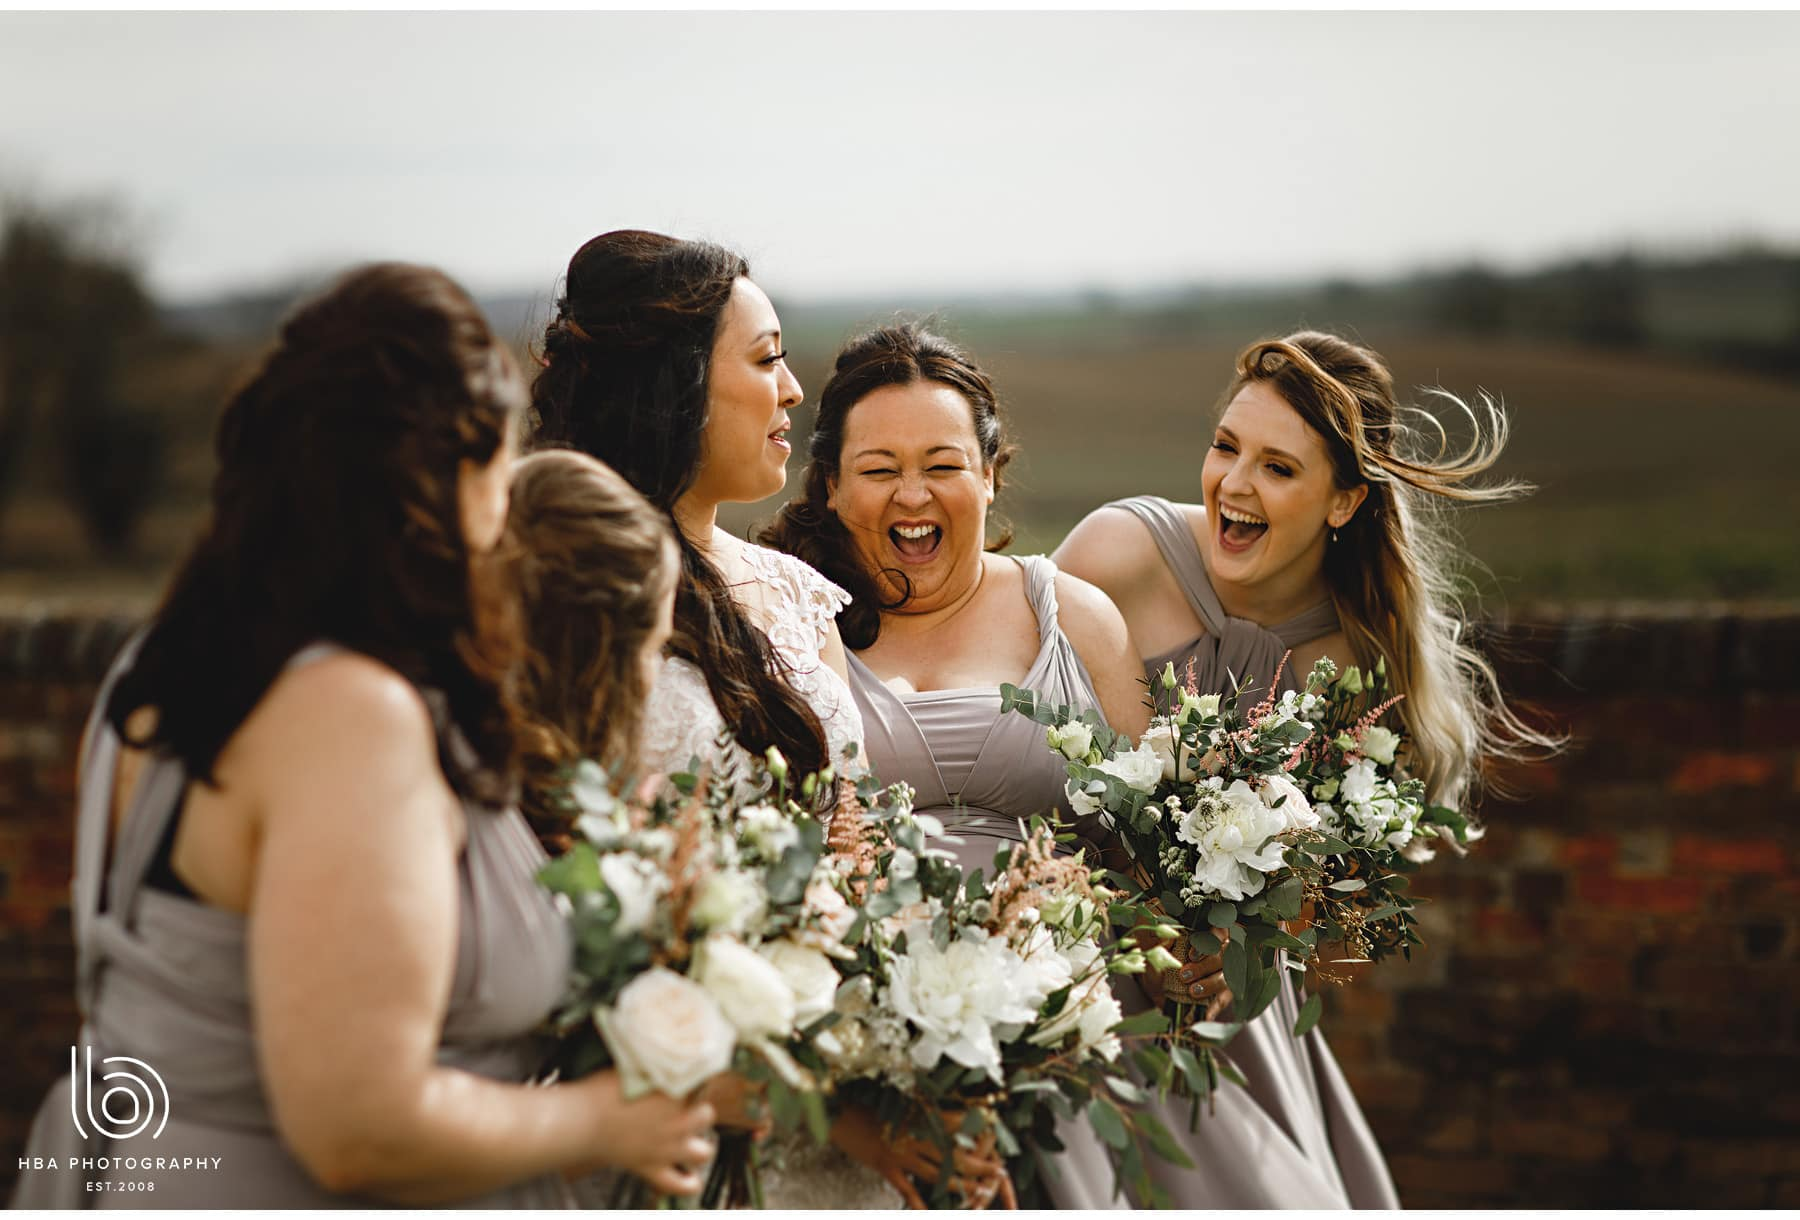 the bride and bridesmaids laughing